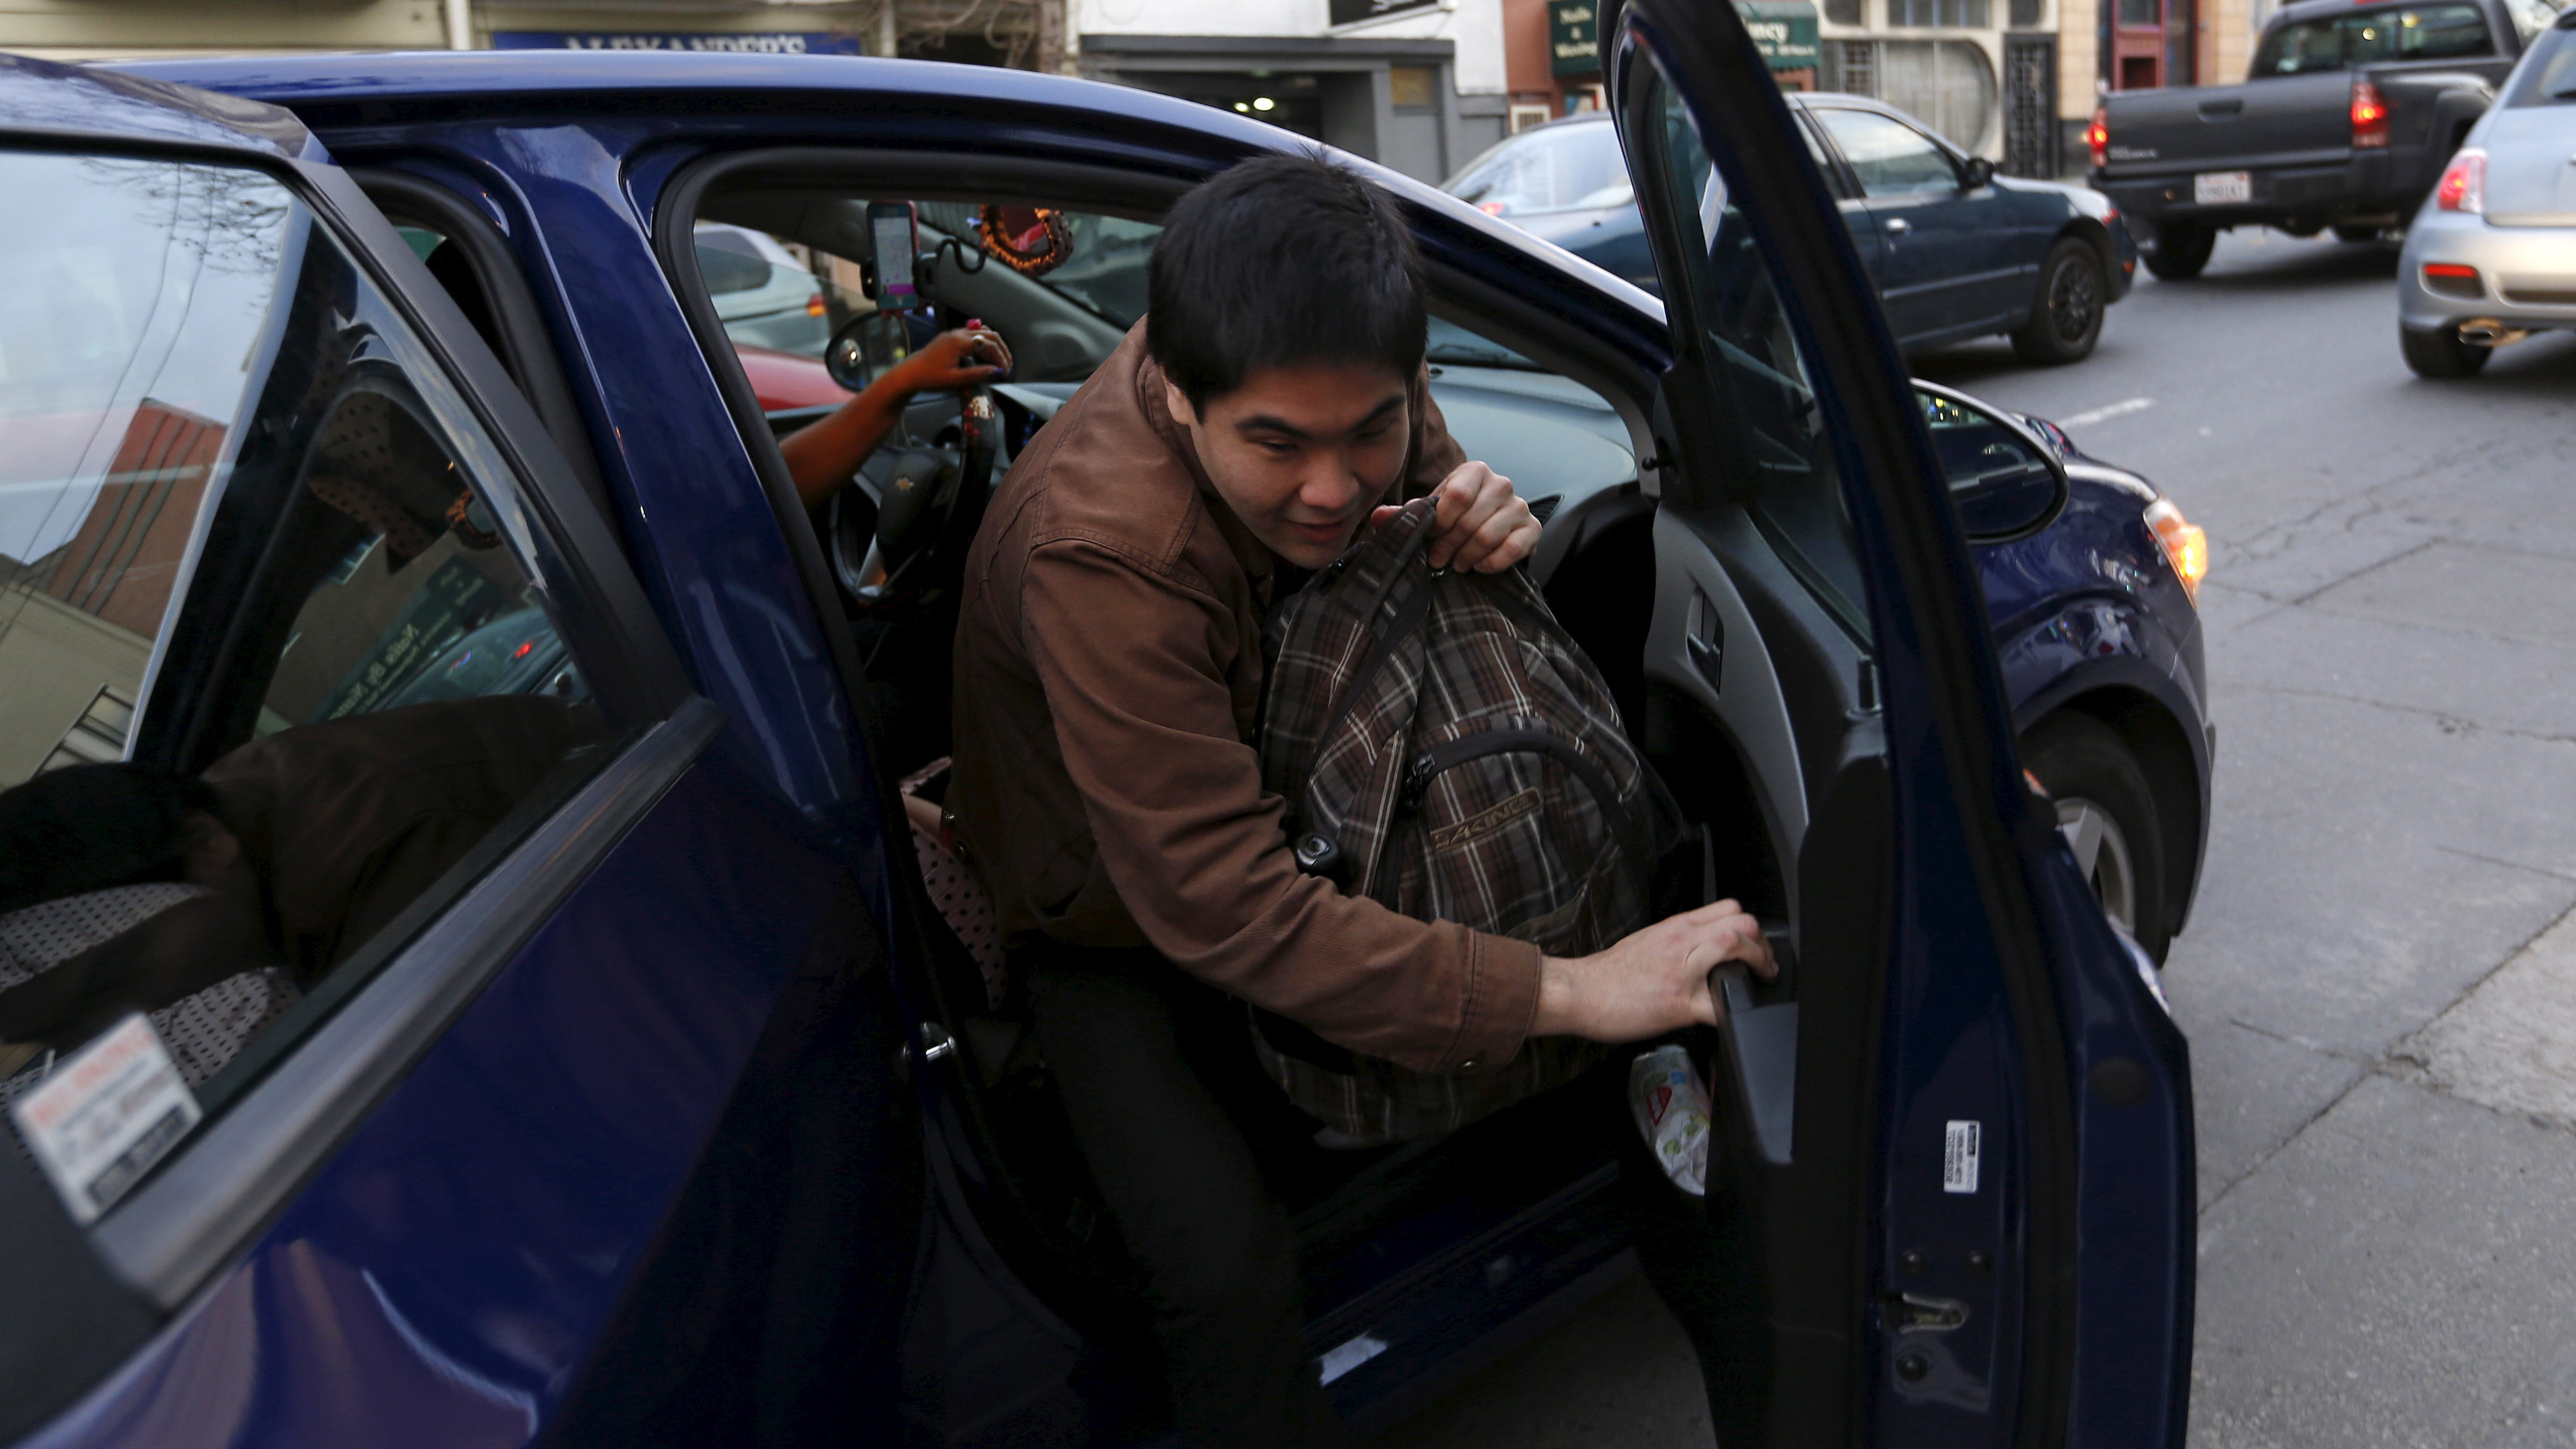 Lyft rider Adam Subiaga exits a car during a photo opportunity in San Francisco